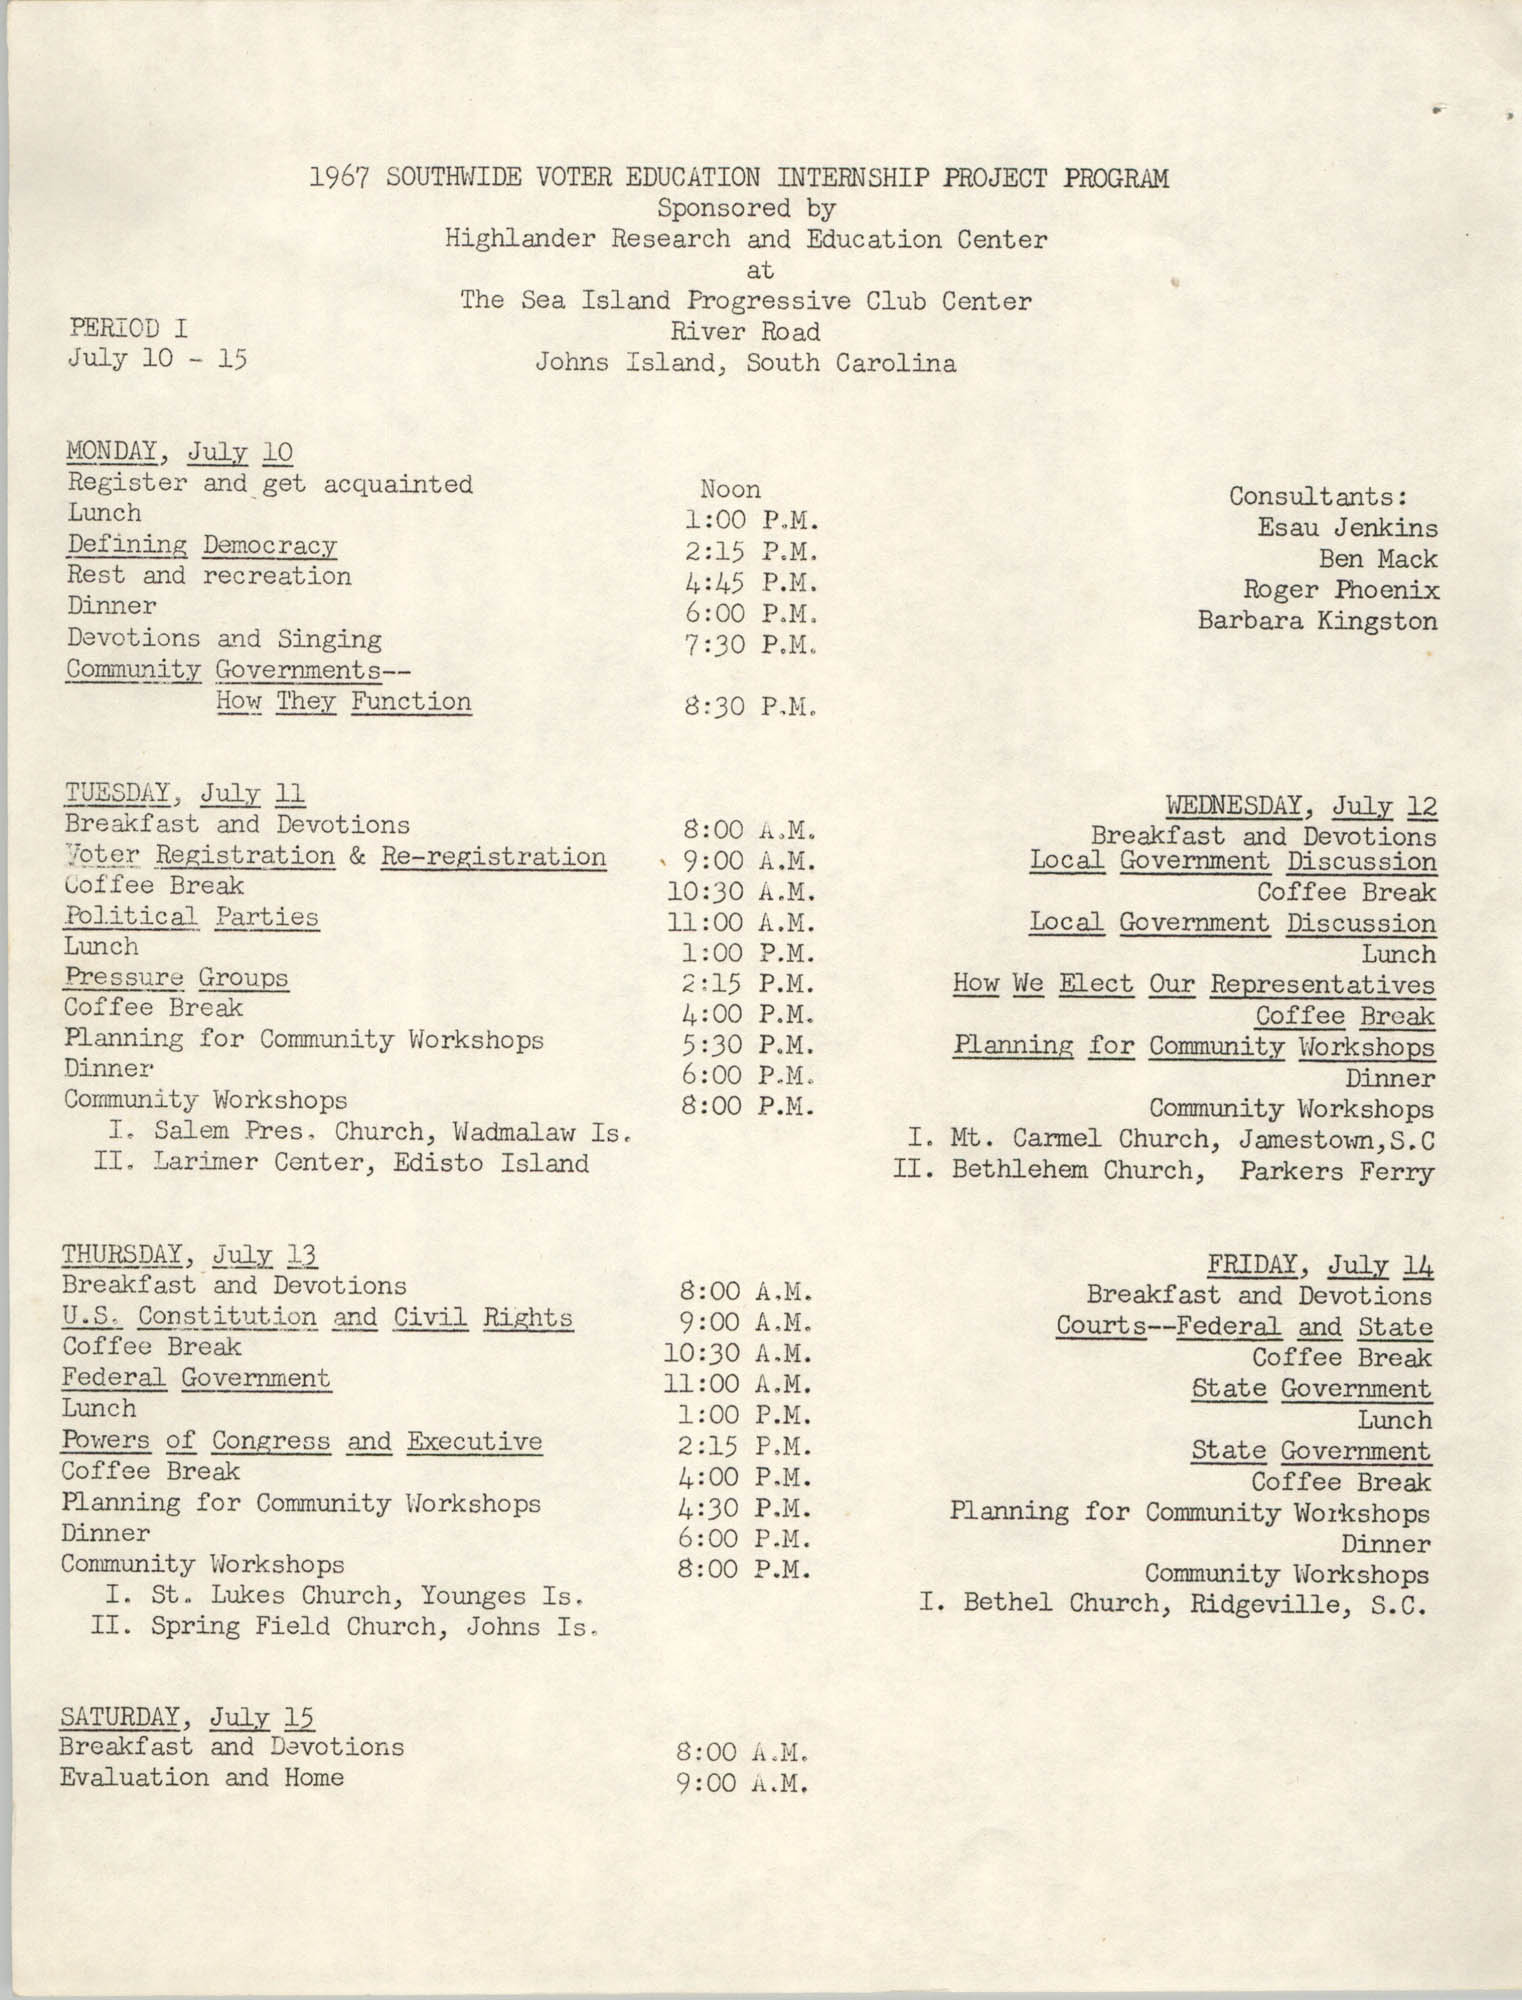 1967 Southwide Voter Education Internship Project Program and Application